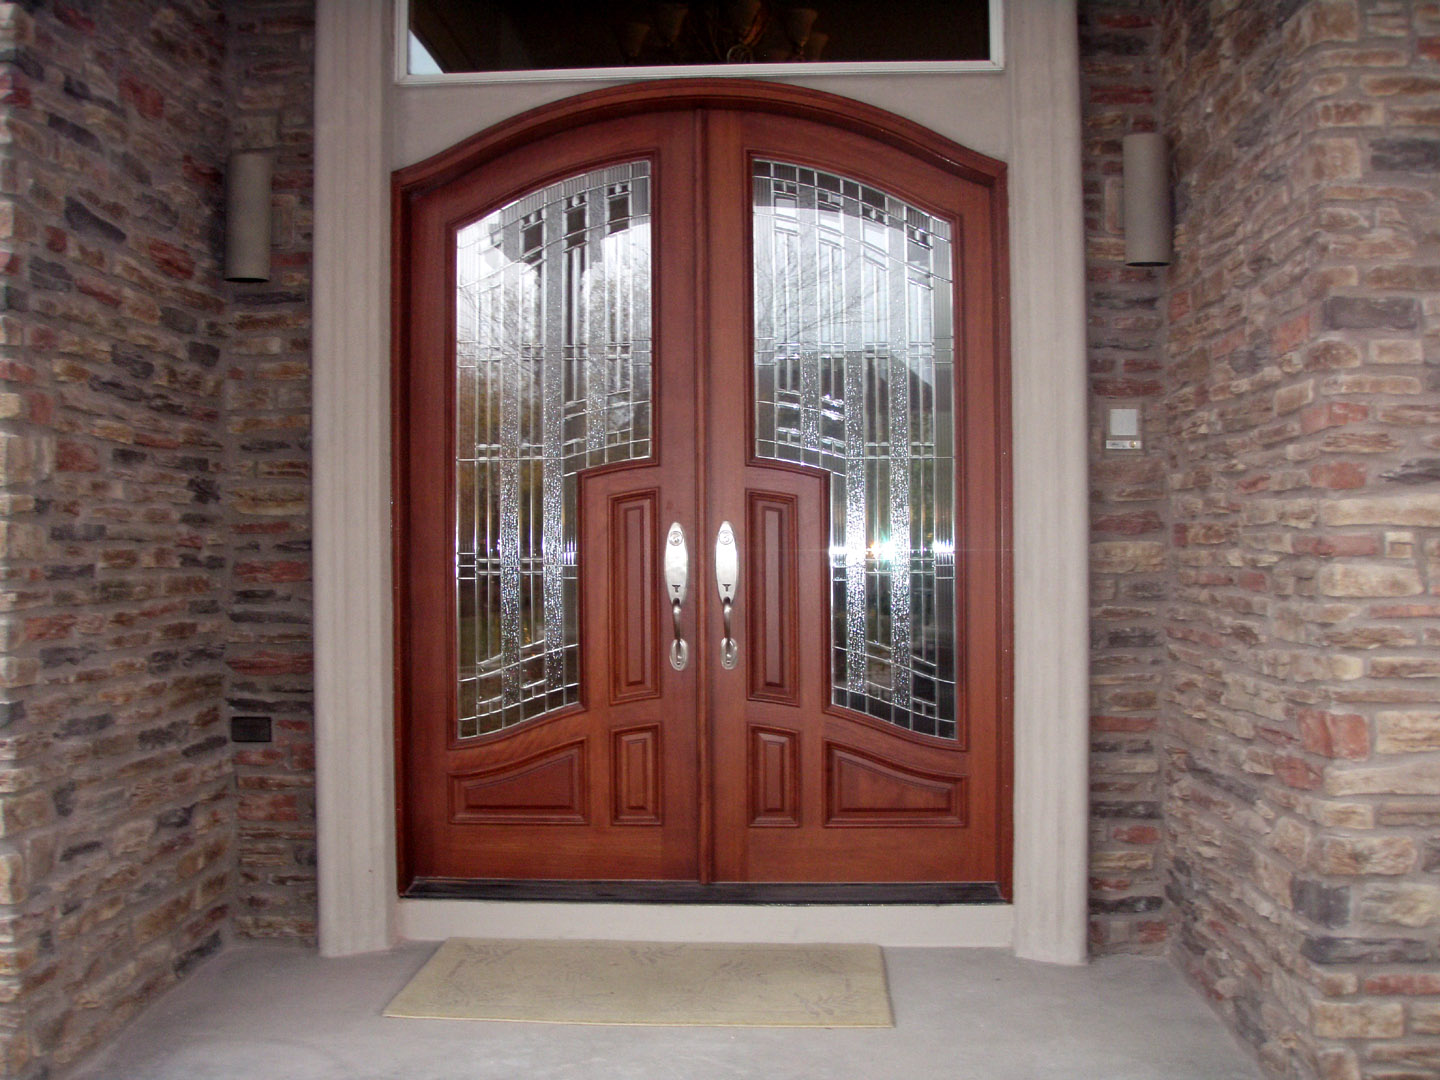 wood doors front doors entry doors exterior doors for sale in wisconsin nicksbuilding com. Black Bedroom Furniture Sets. Home Design Ideas